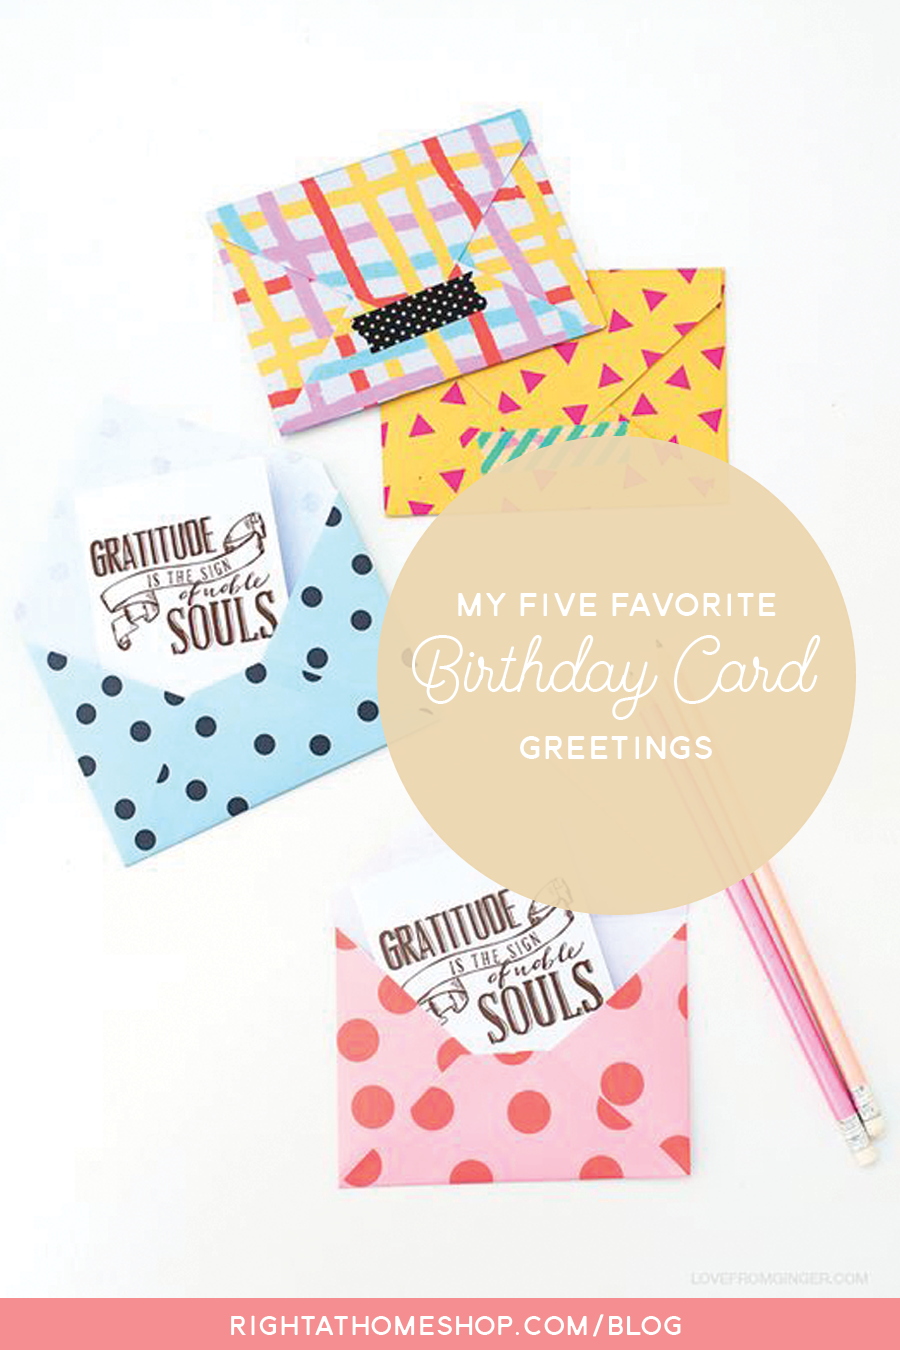 My 5 Favorite Greetings for Inside a Birthday Card // rightathomeshop.com/blog